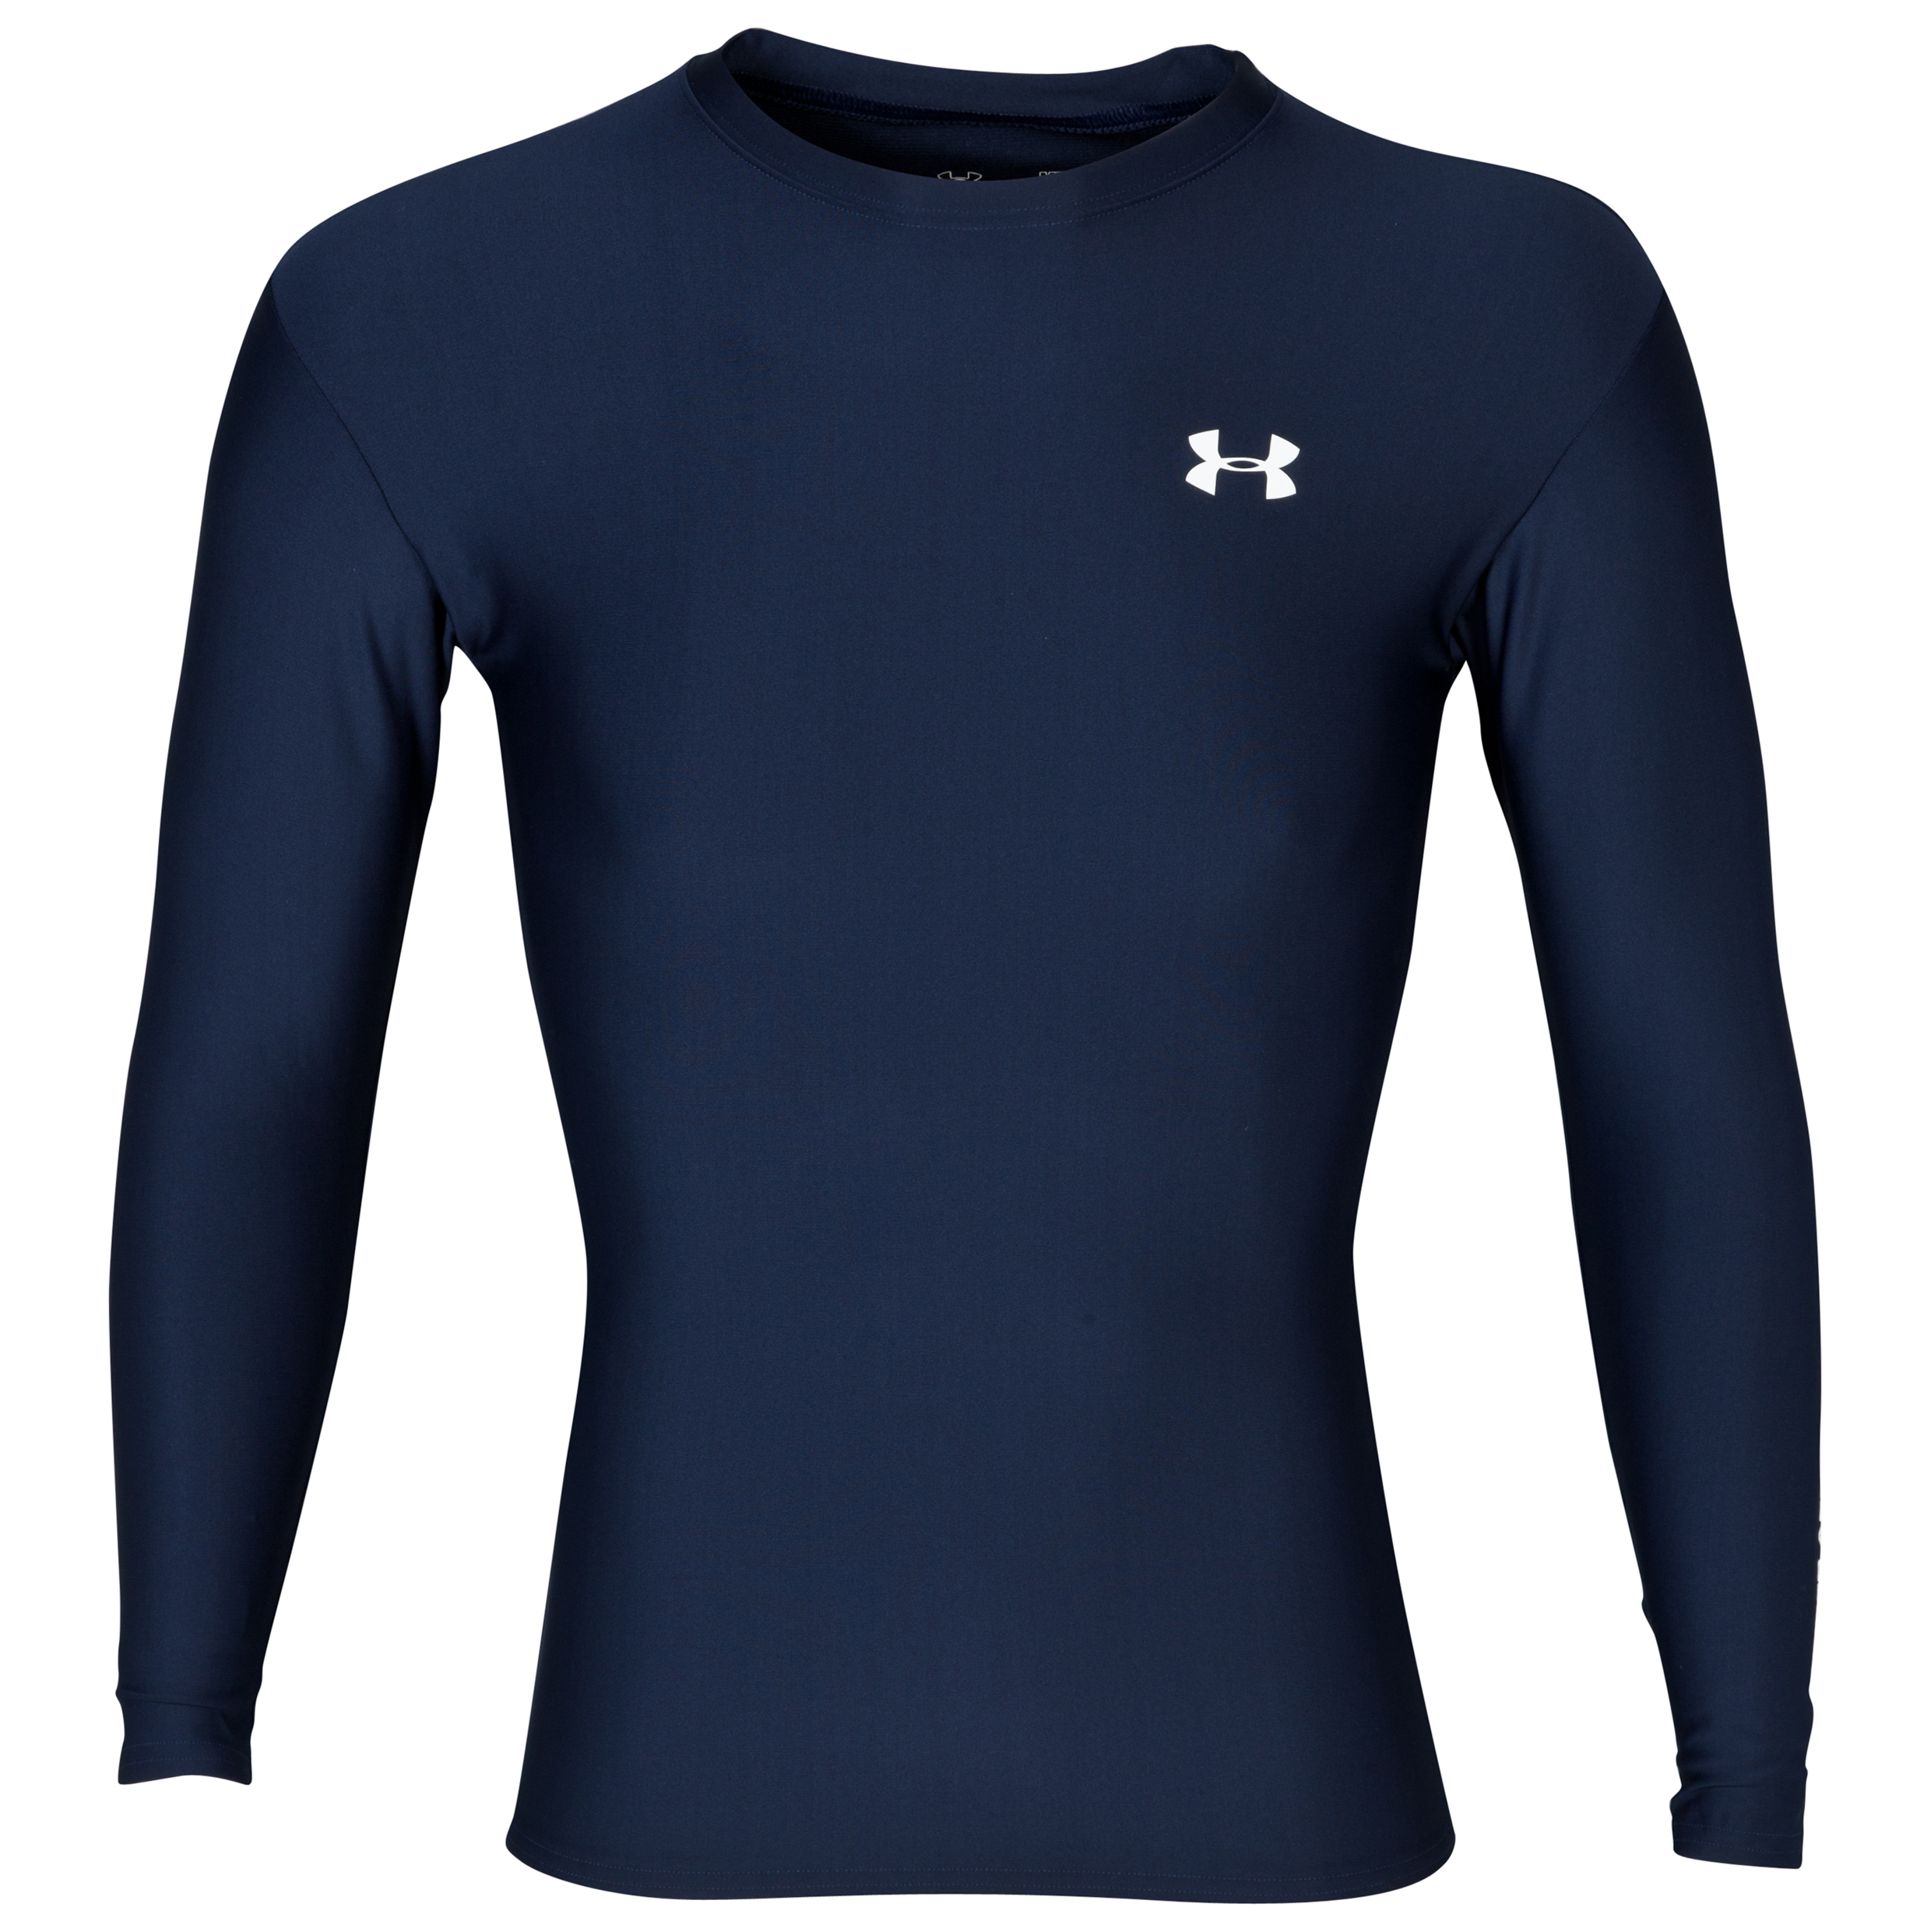 Under Armour Evo Coldgear crew 11 Base Layer Top - Long Sleeve Navy